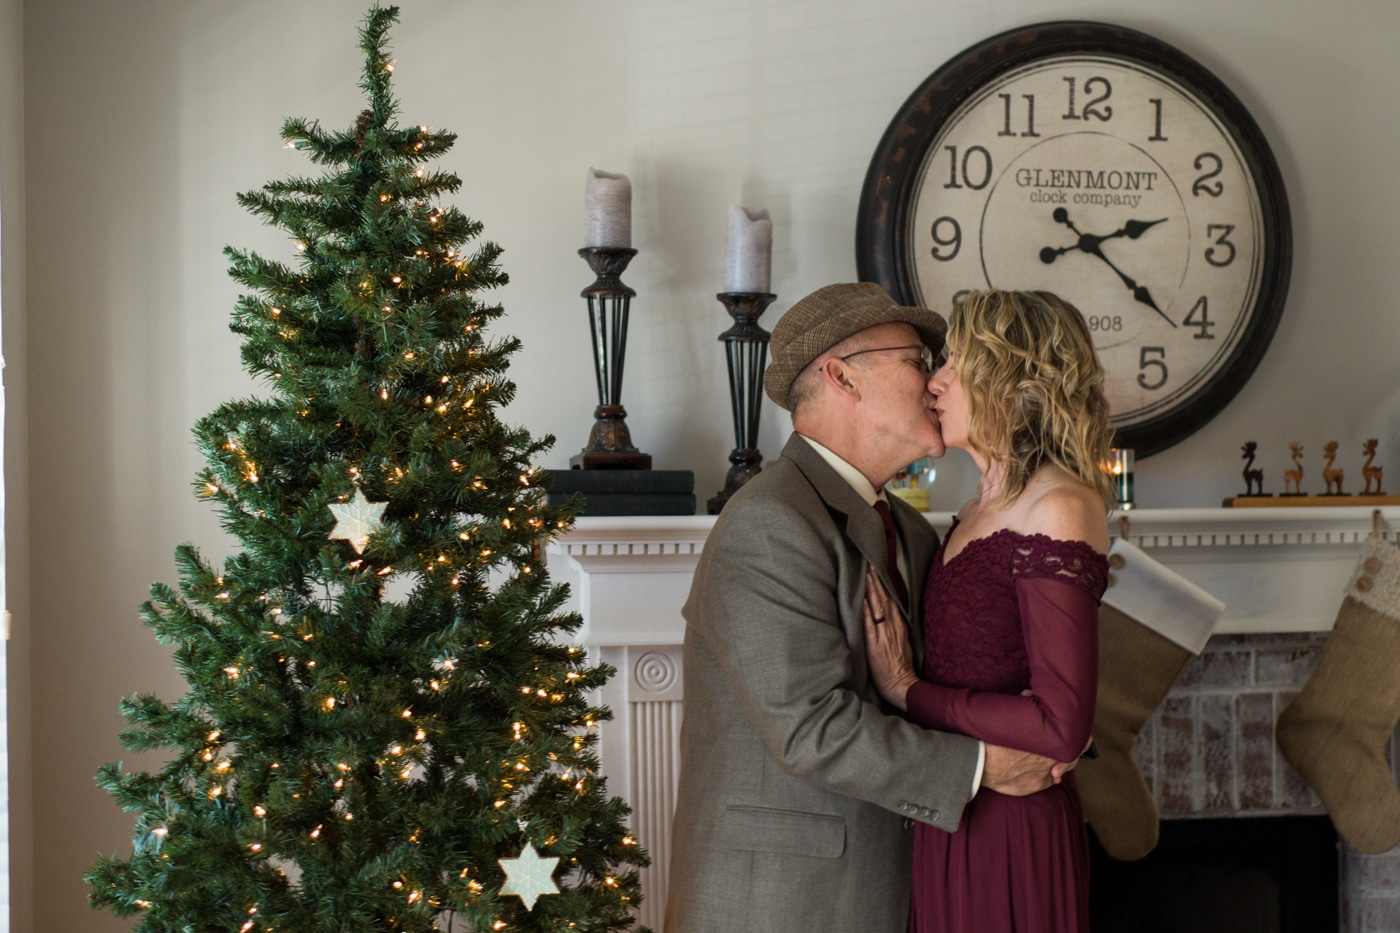 bride and groom kiss by Christmas tree after at-home elopement